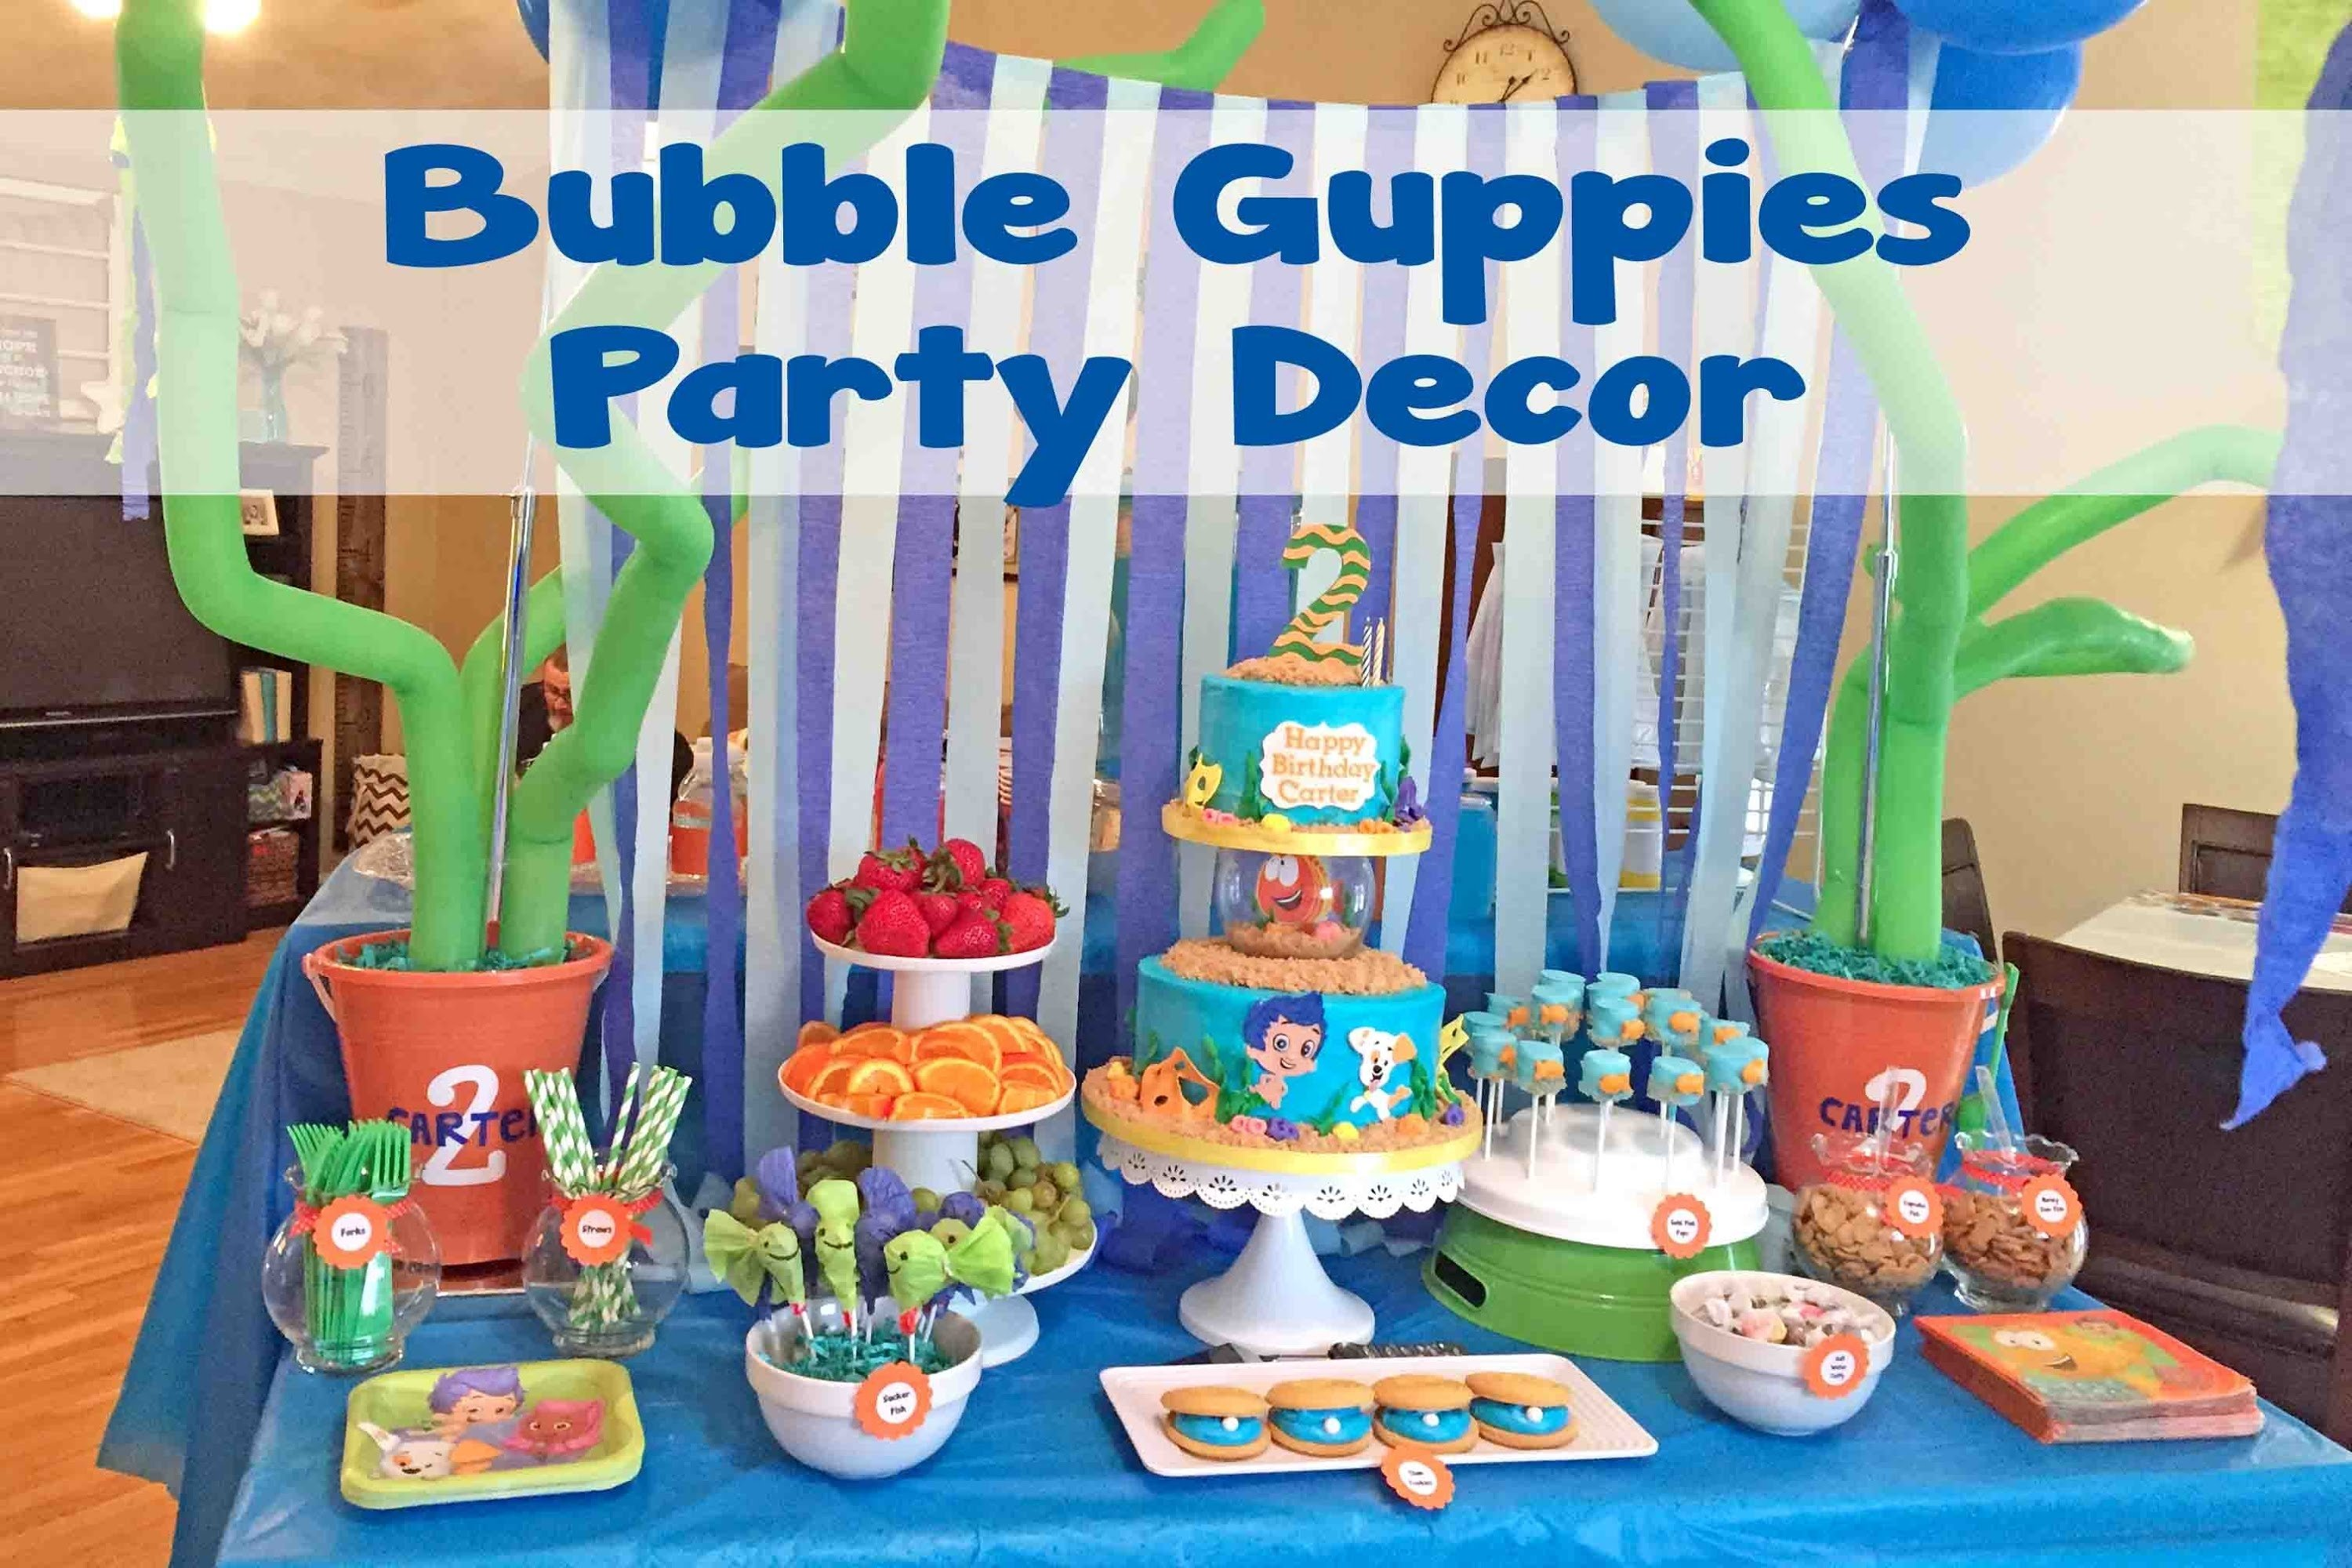 10 Trendy Bubble Guppies Birthday Party Food Ideas bubble guppies under the sea party decor 48 youtube